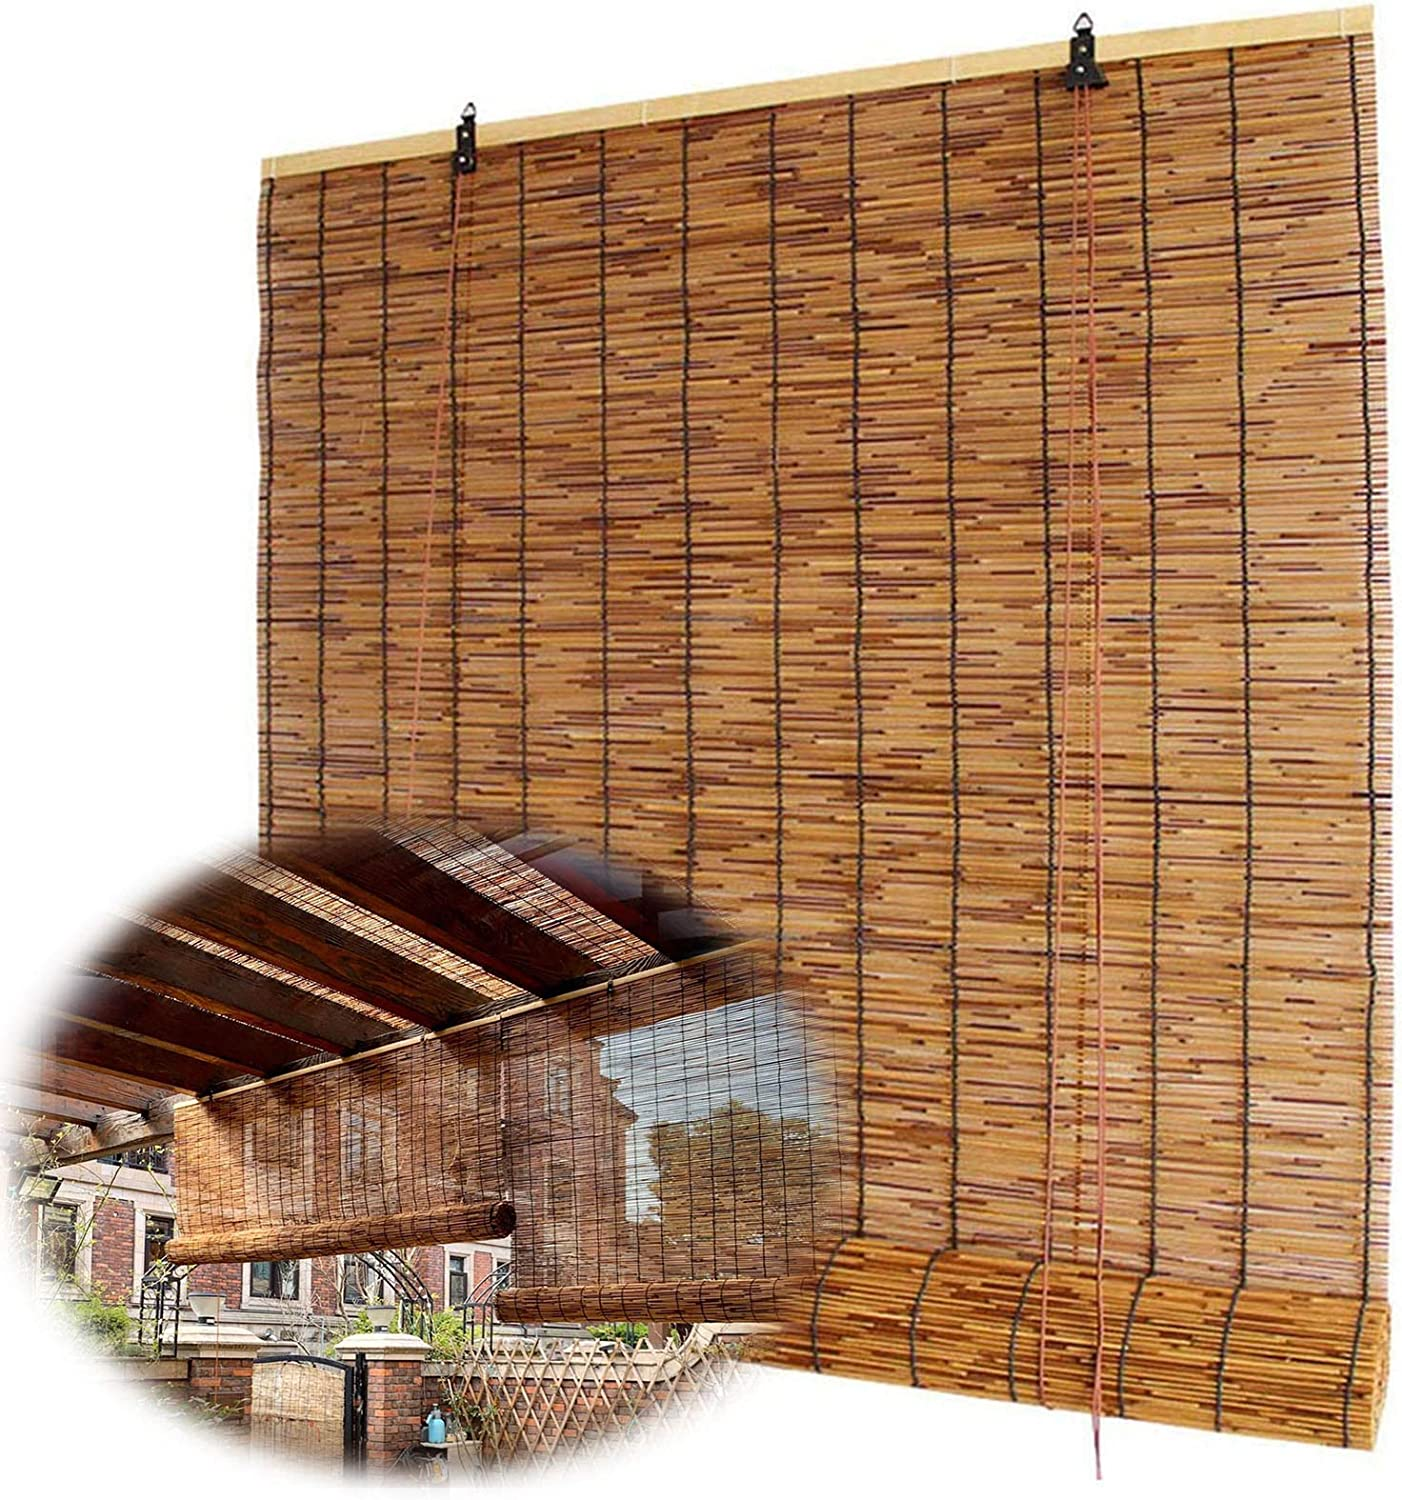 YUANJJ Bamboo 海外輸入 Roller Blinds - 開店祝い Decora Reed Retro Shades Natural